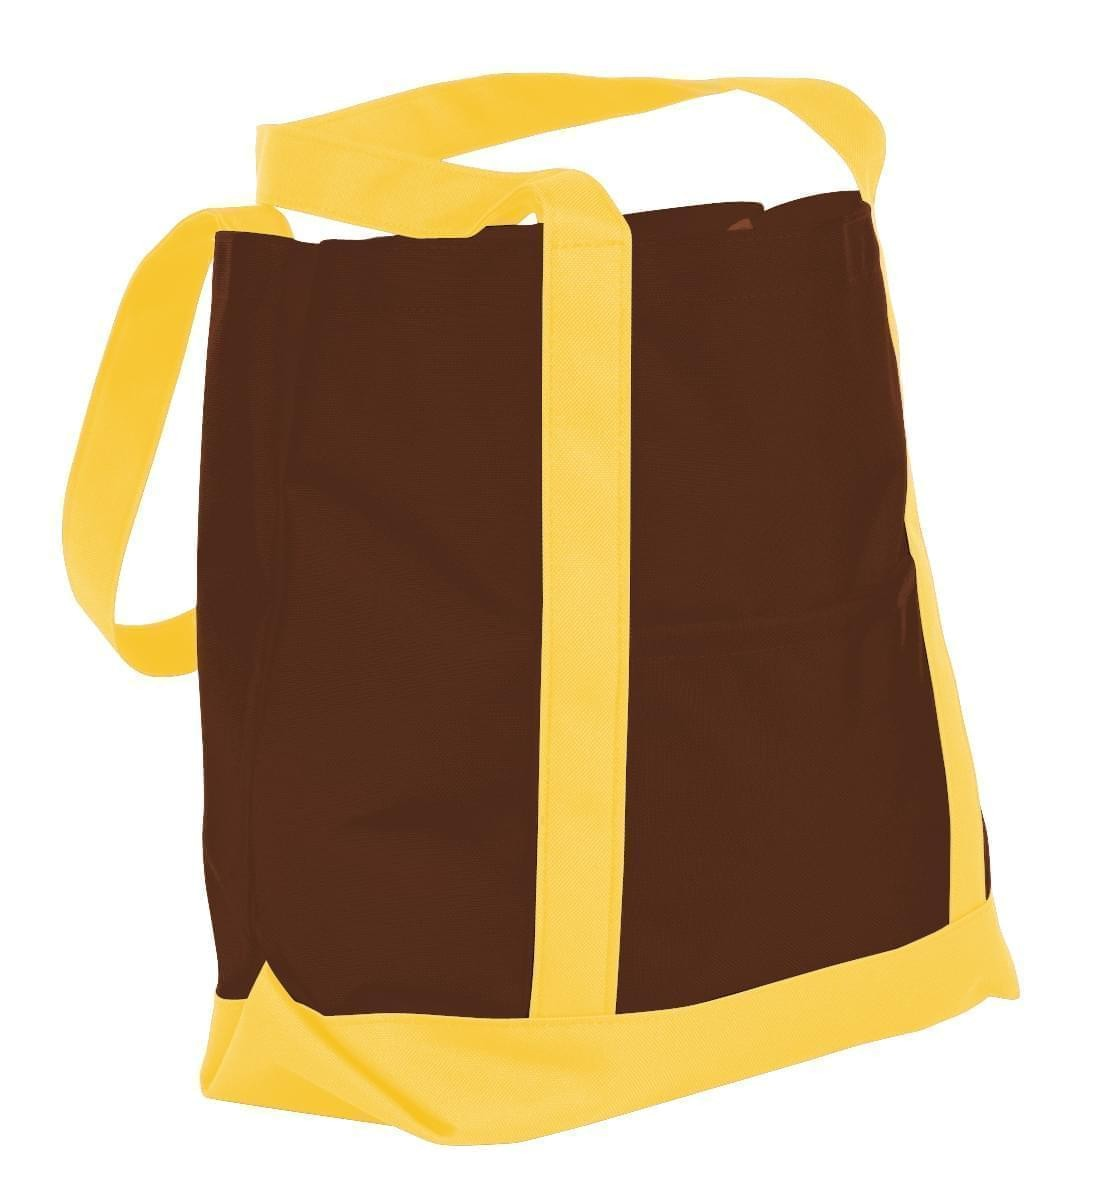 USA Made Nylon Poly Boat Tote Bags, Brown-Gold, XAACL1UAPQ